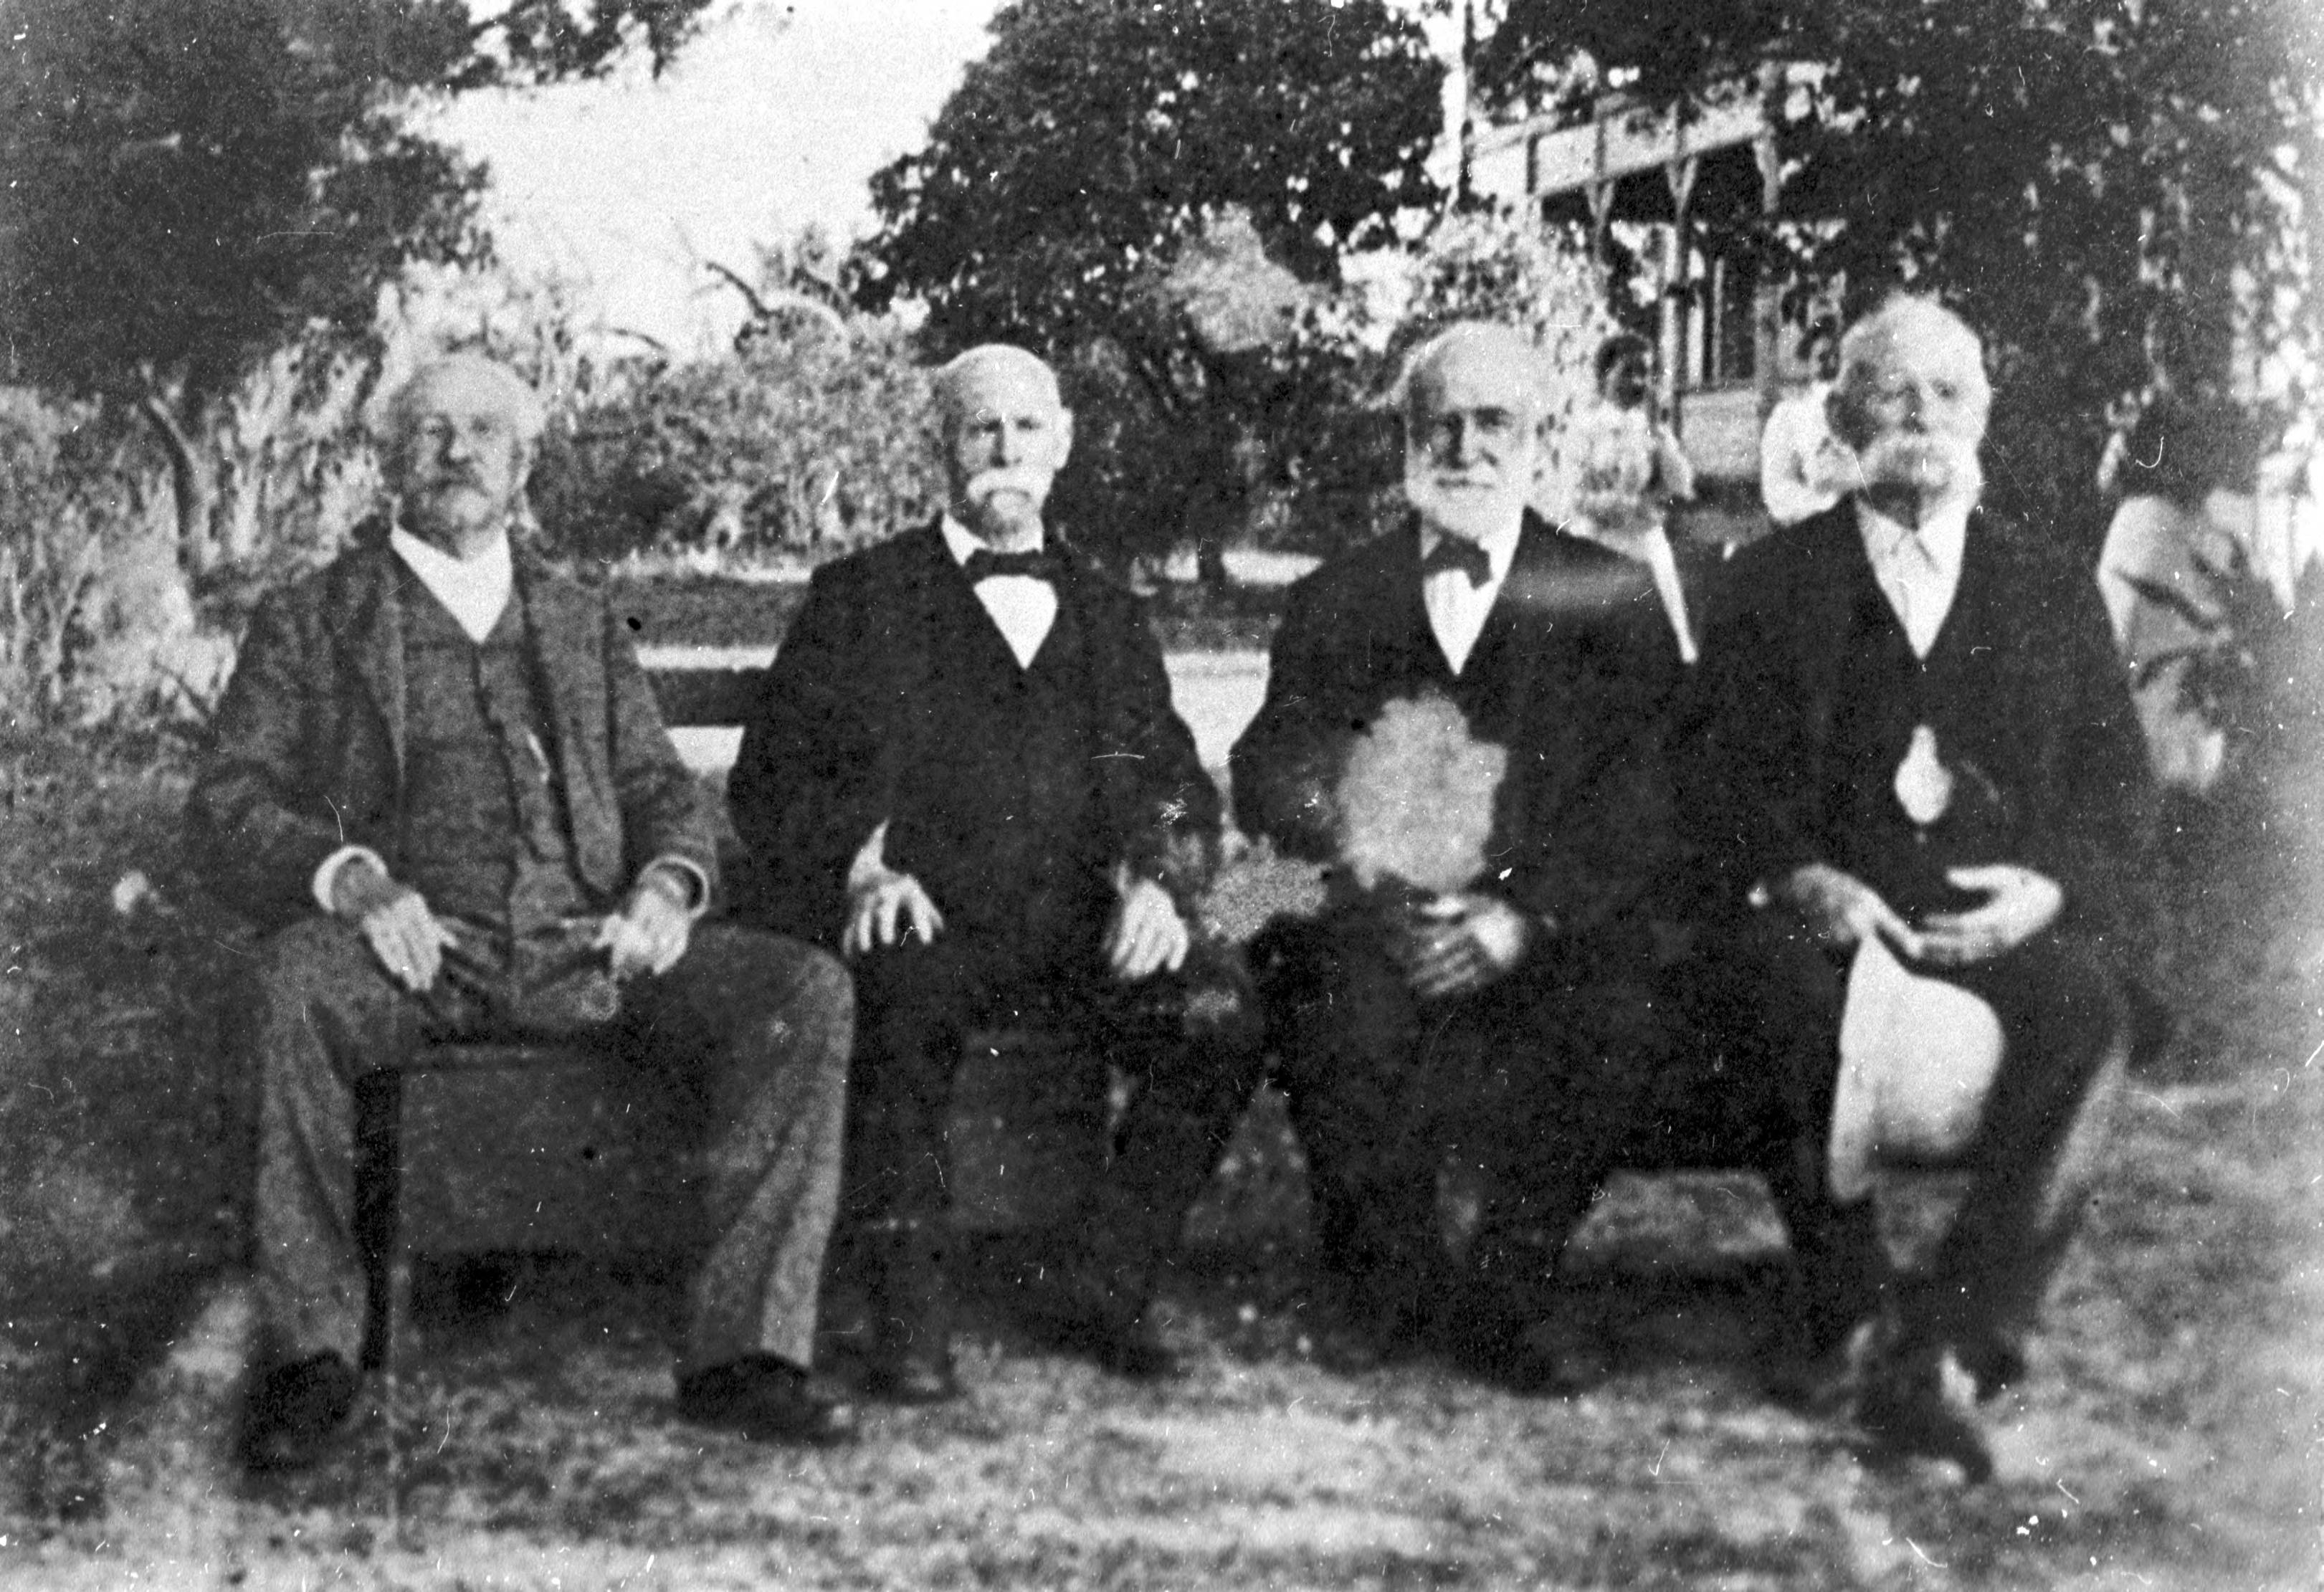 The four Fogarty brothers: Jerry, William, Bartholomew, and John (ca. 1905-1910)